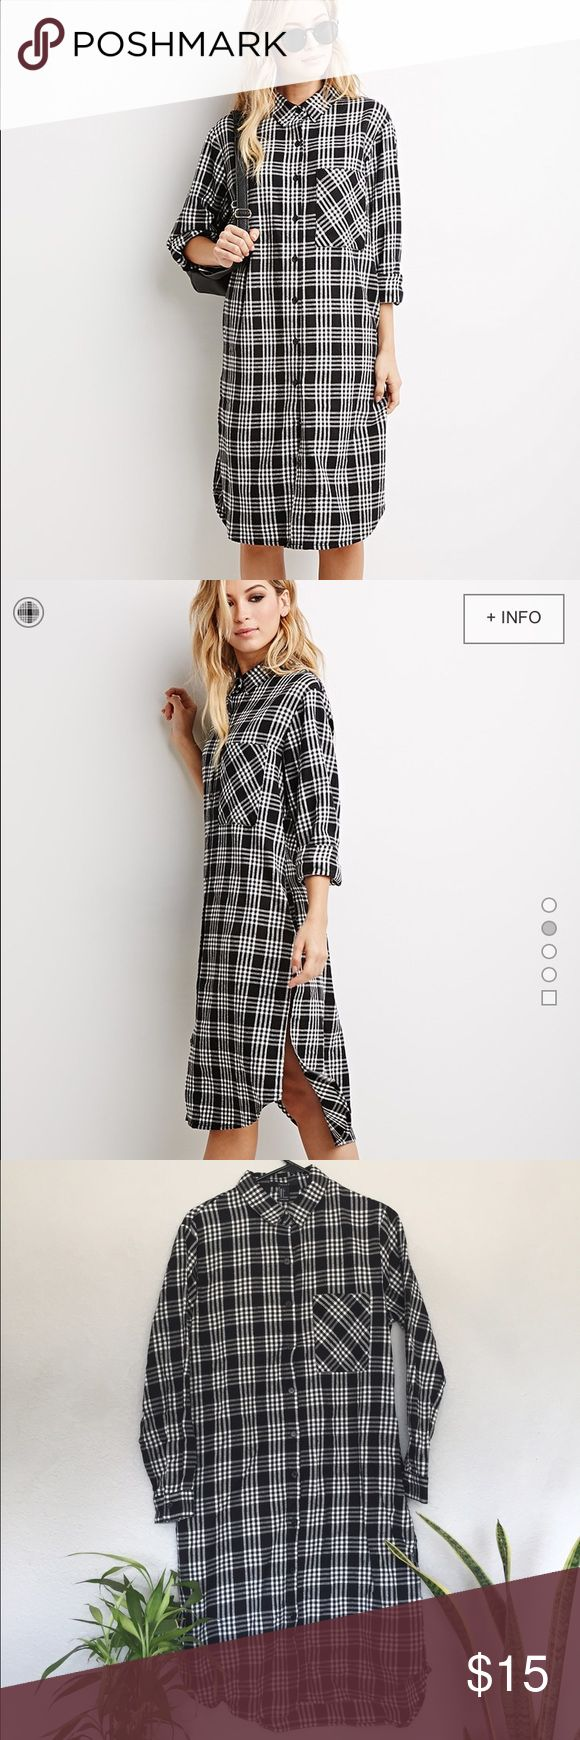 Plaid Flannel Shirt Dress Brand New with Tags Grunge Oversized Black and White Plaid Flannel Shirt Dress with side slits Forever 21 Dresses Midi